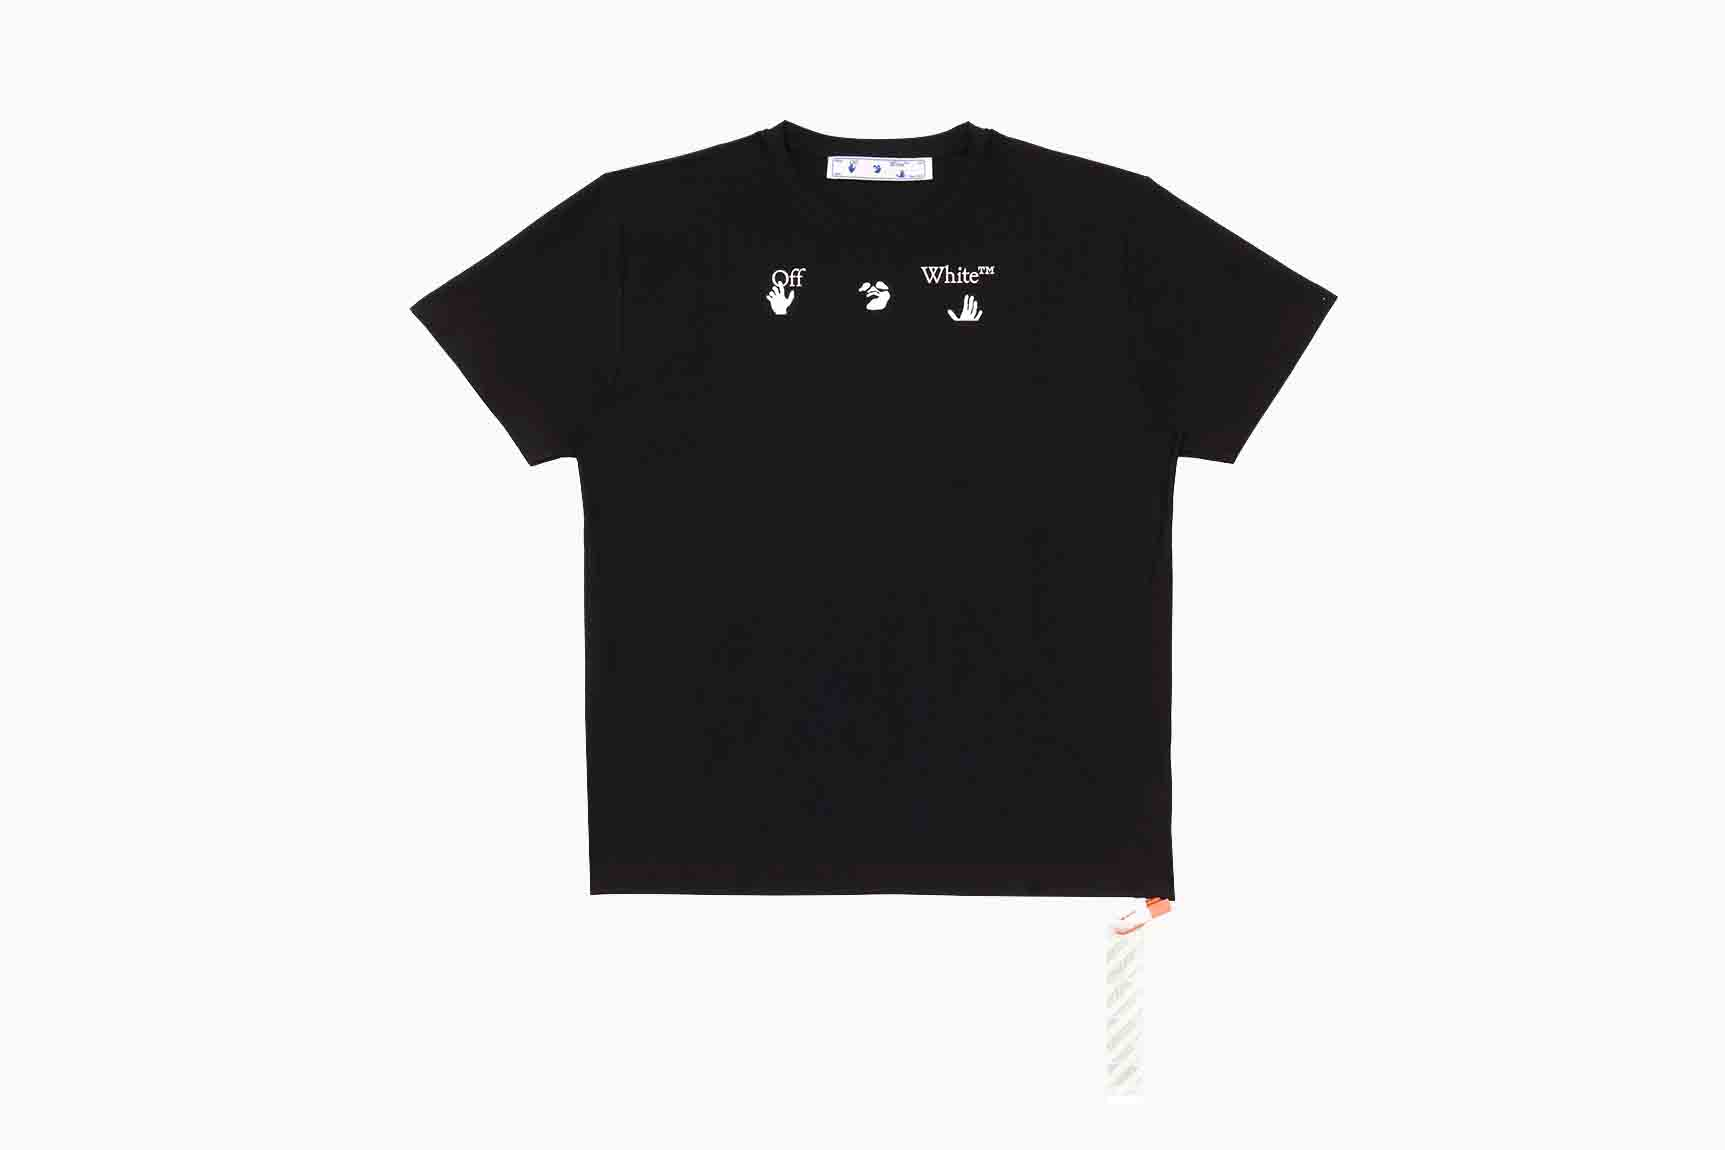 off white logo off white clothing company